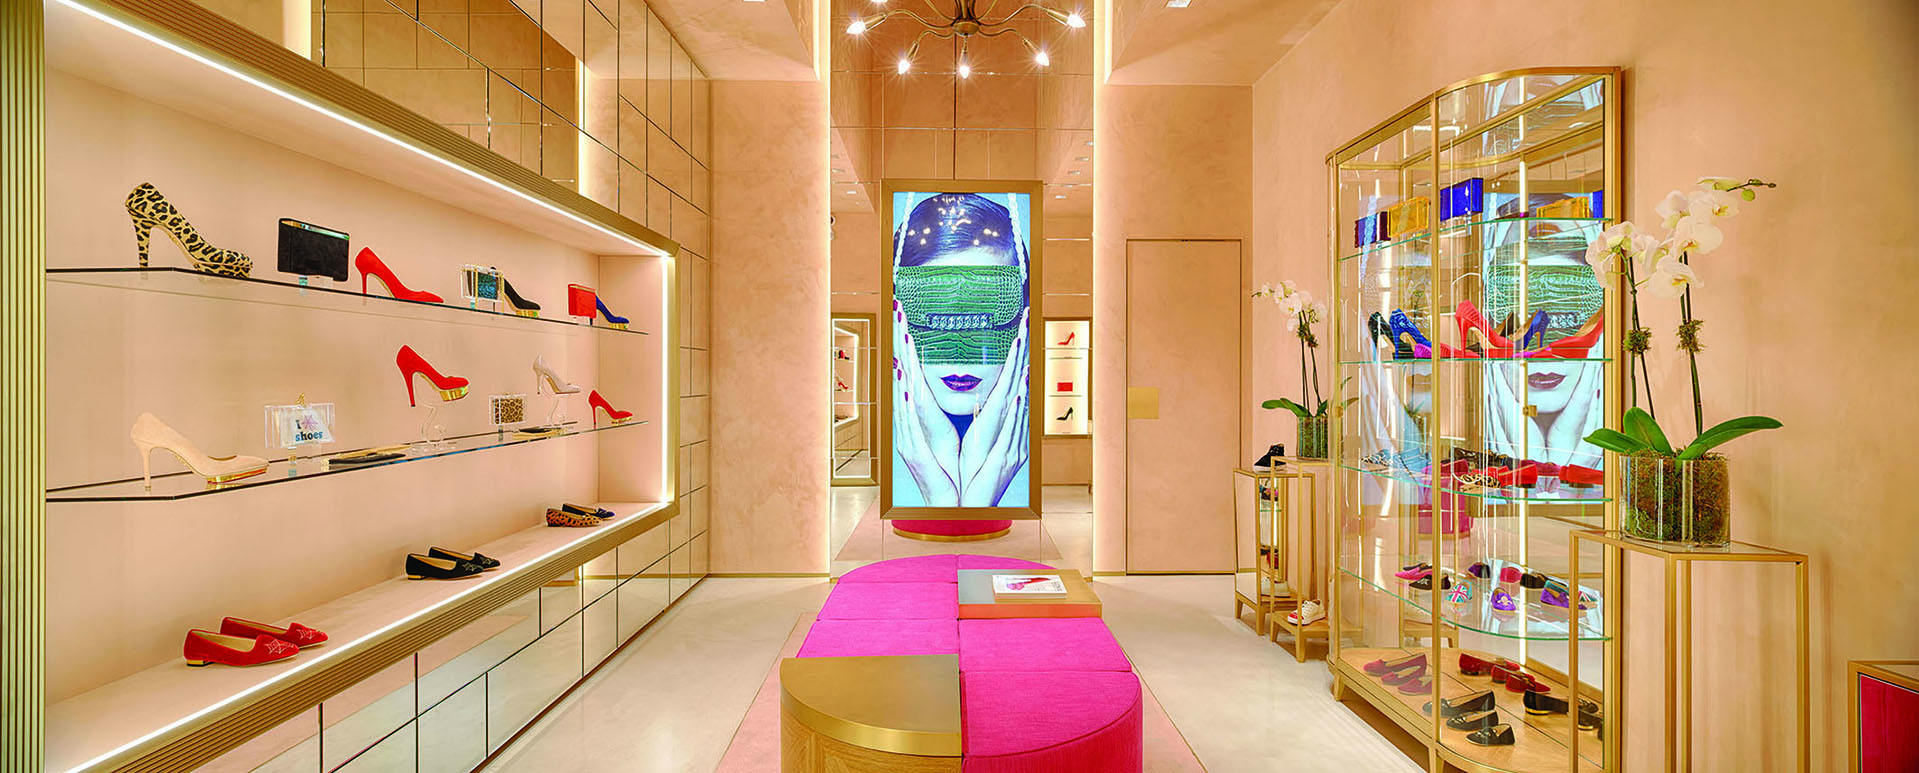 CHARLOTTE OLYMPIA retail units